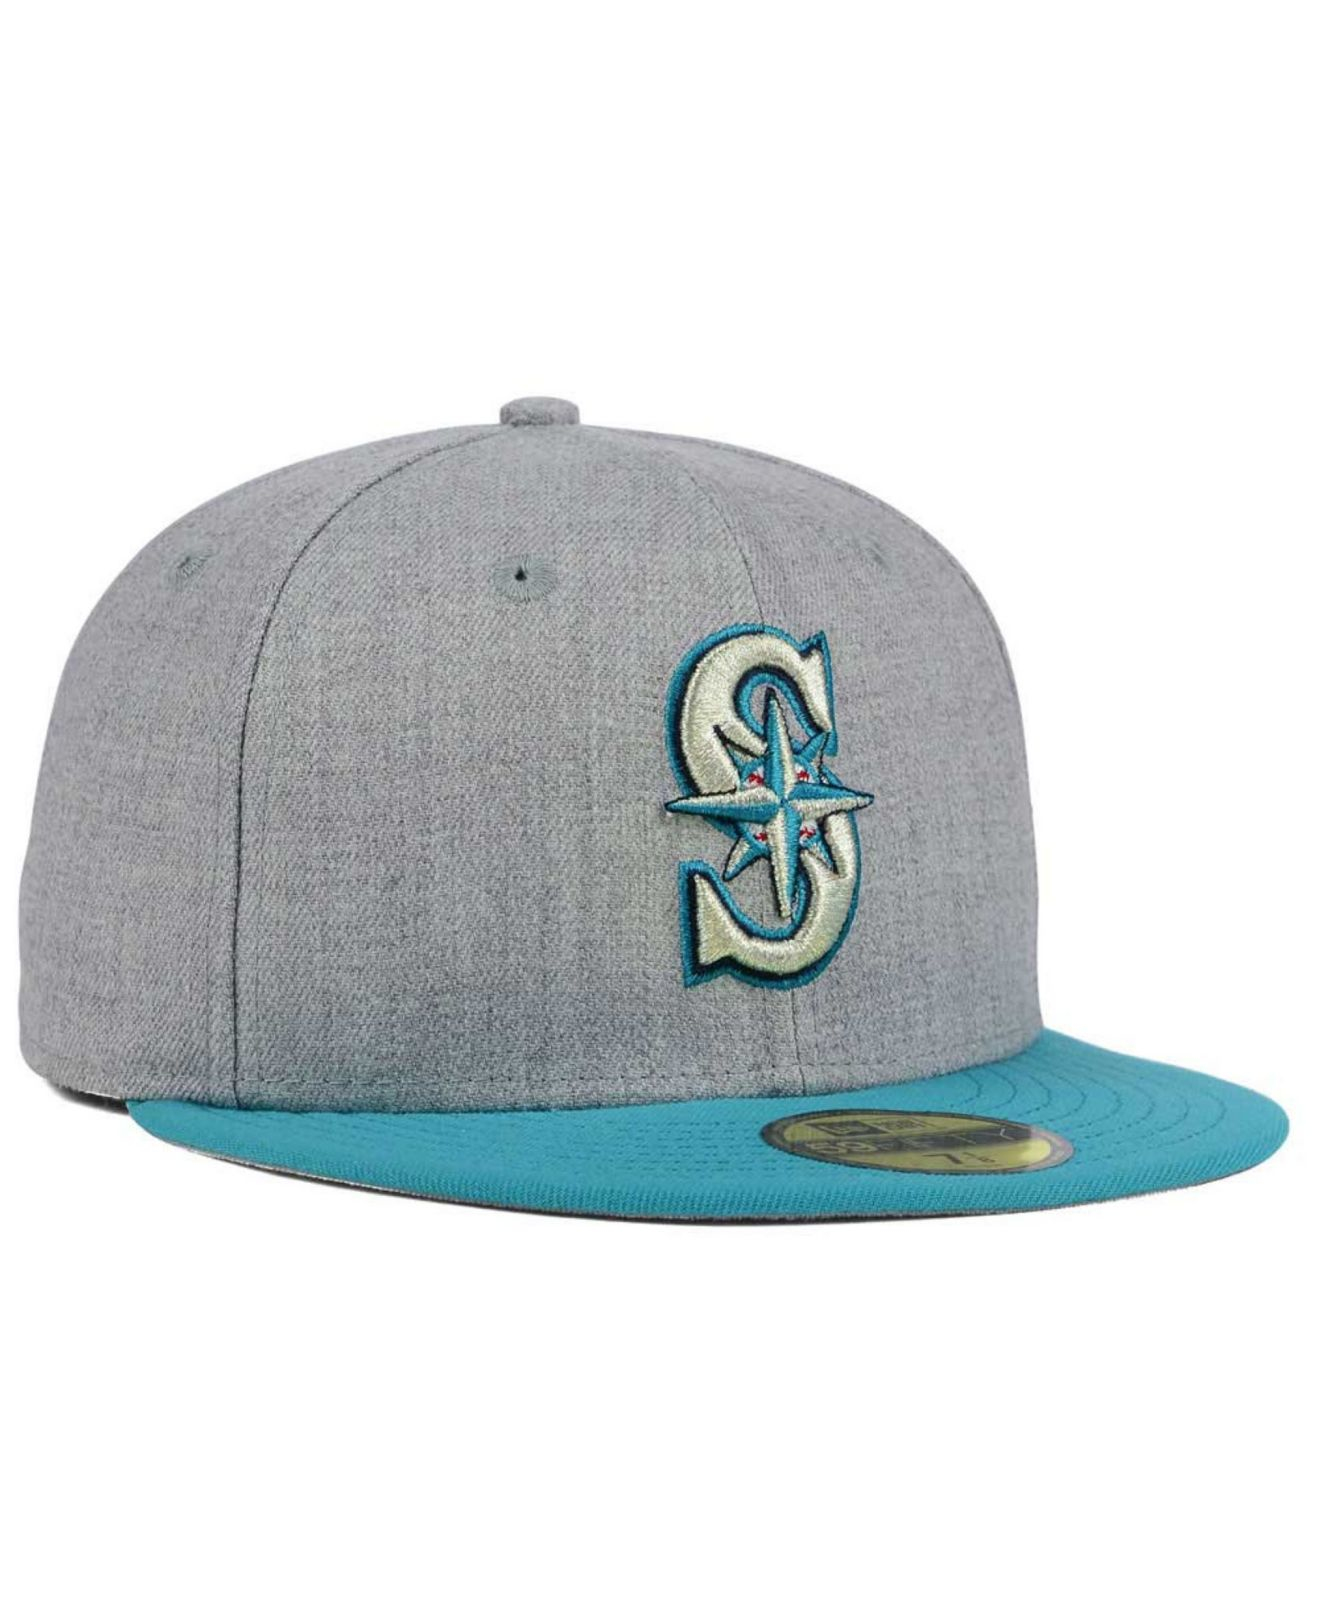 buy popular c4ac7 163db ... free shipping lyst ktz seattle mariners heather team color 59fifty cap  in gray a5059 6f45a